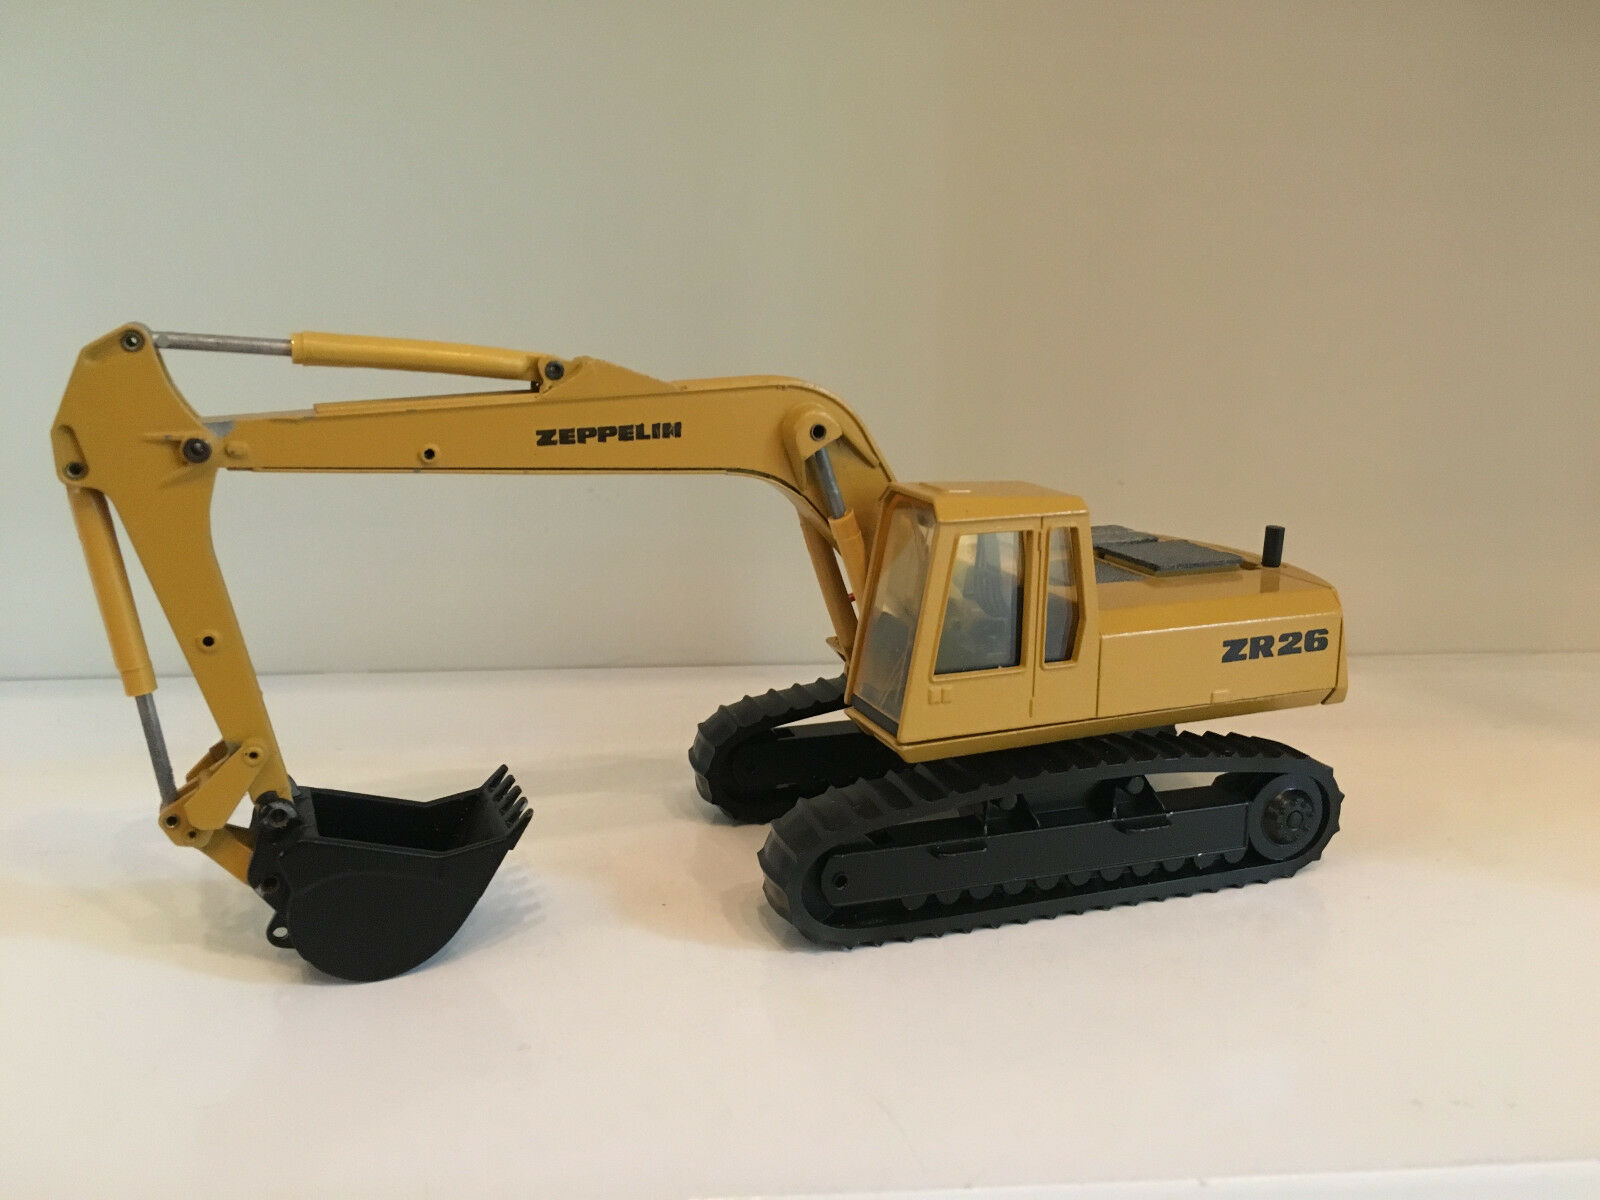 Zeppelin ZR 26 Chain Excavator by Conrad 2814 in 1 50